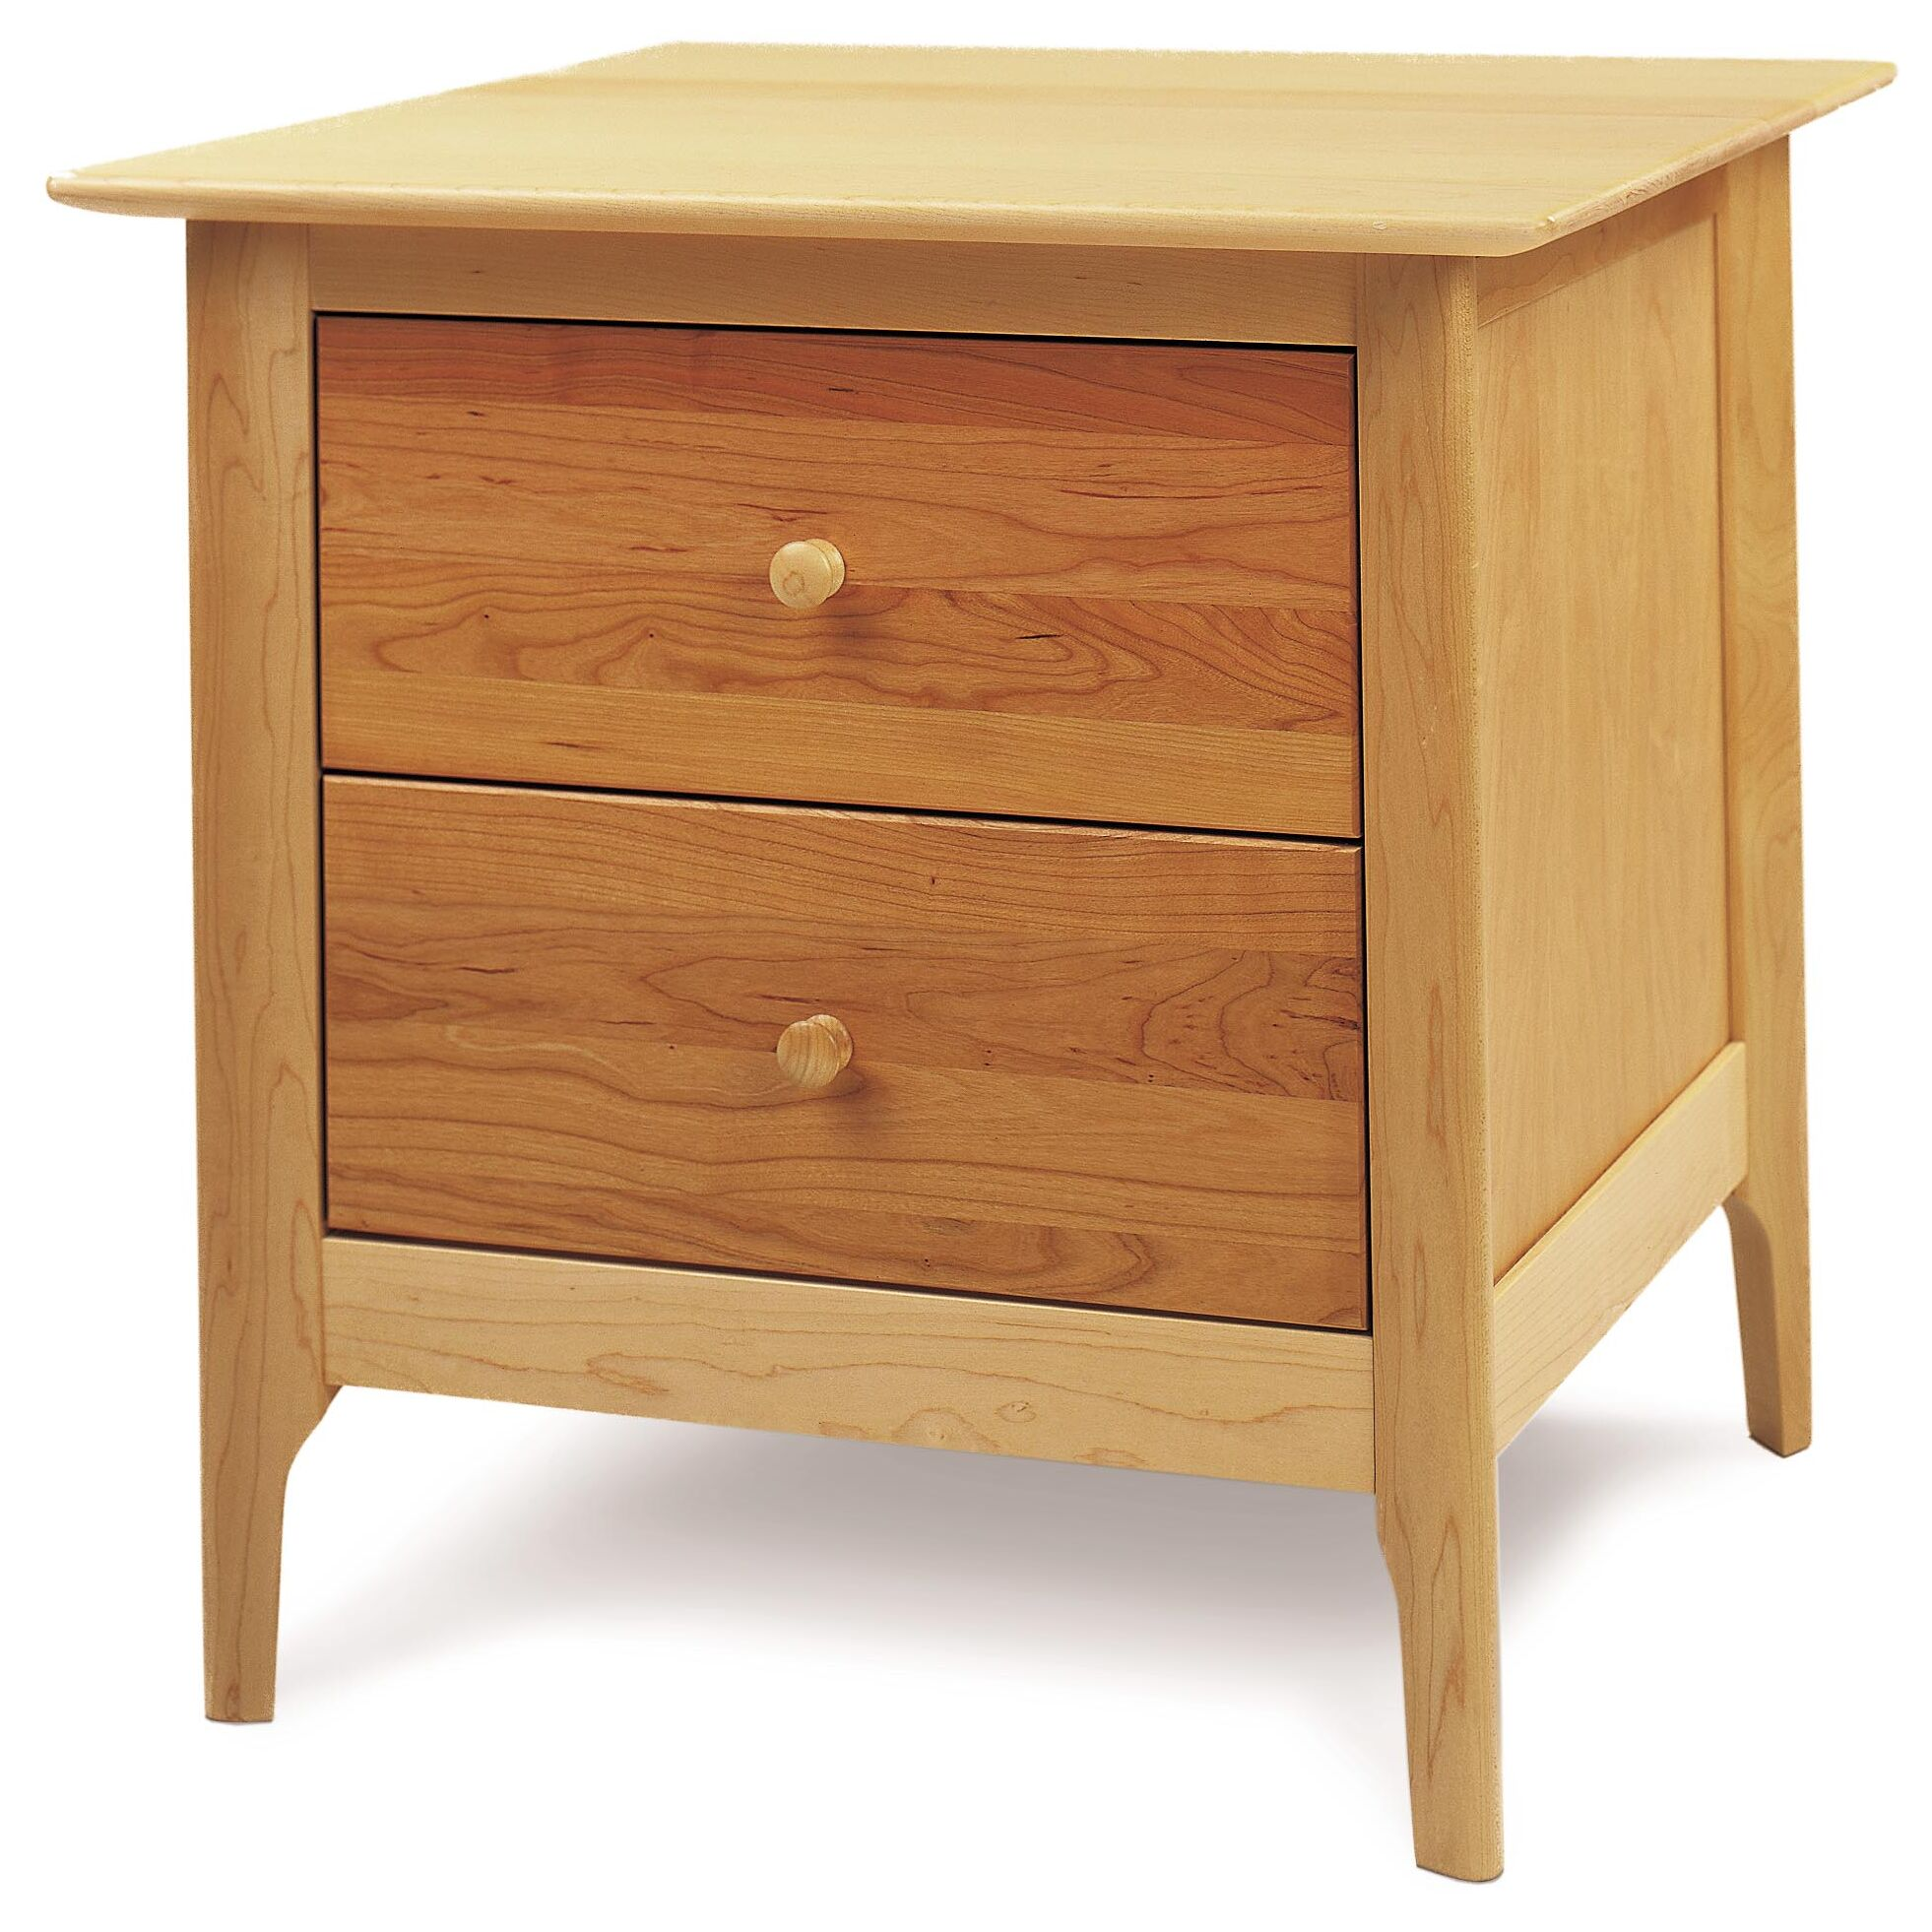 Sarah 2 Drawer Nightstand Color: Cognac Cherry, Height: 28